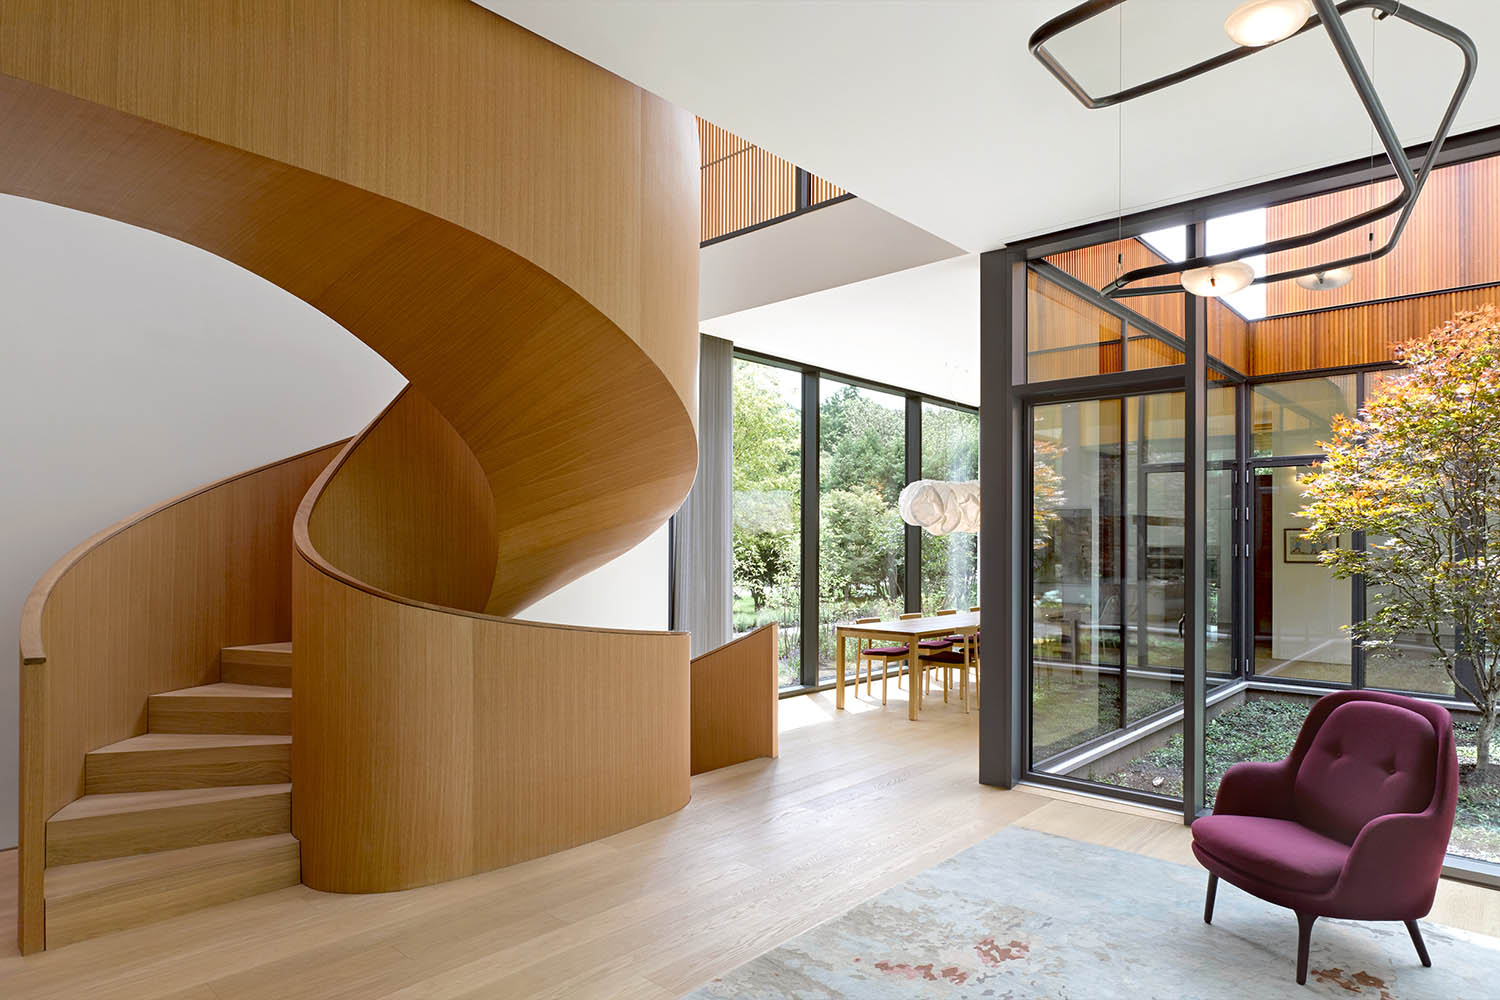 Spaces collapse across the courtyard. View showing the living and dining rooms and spiral stair. Ben Rahn/A-Frame Inc.